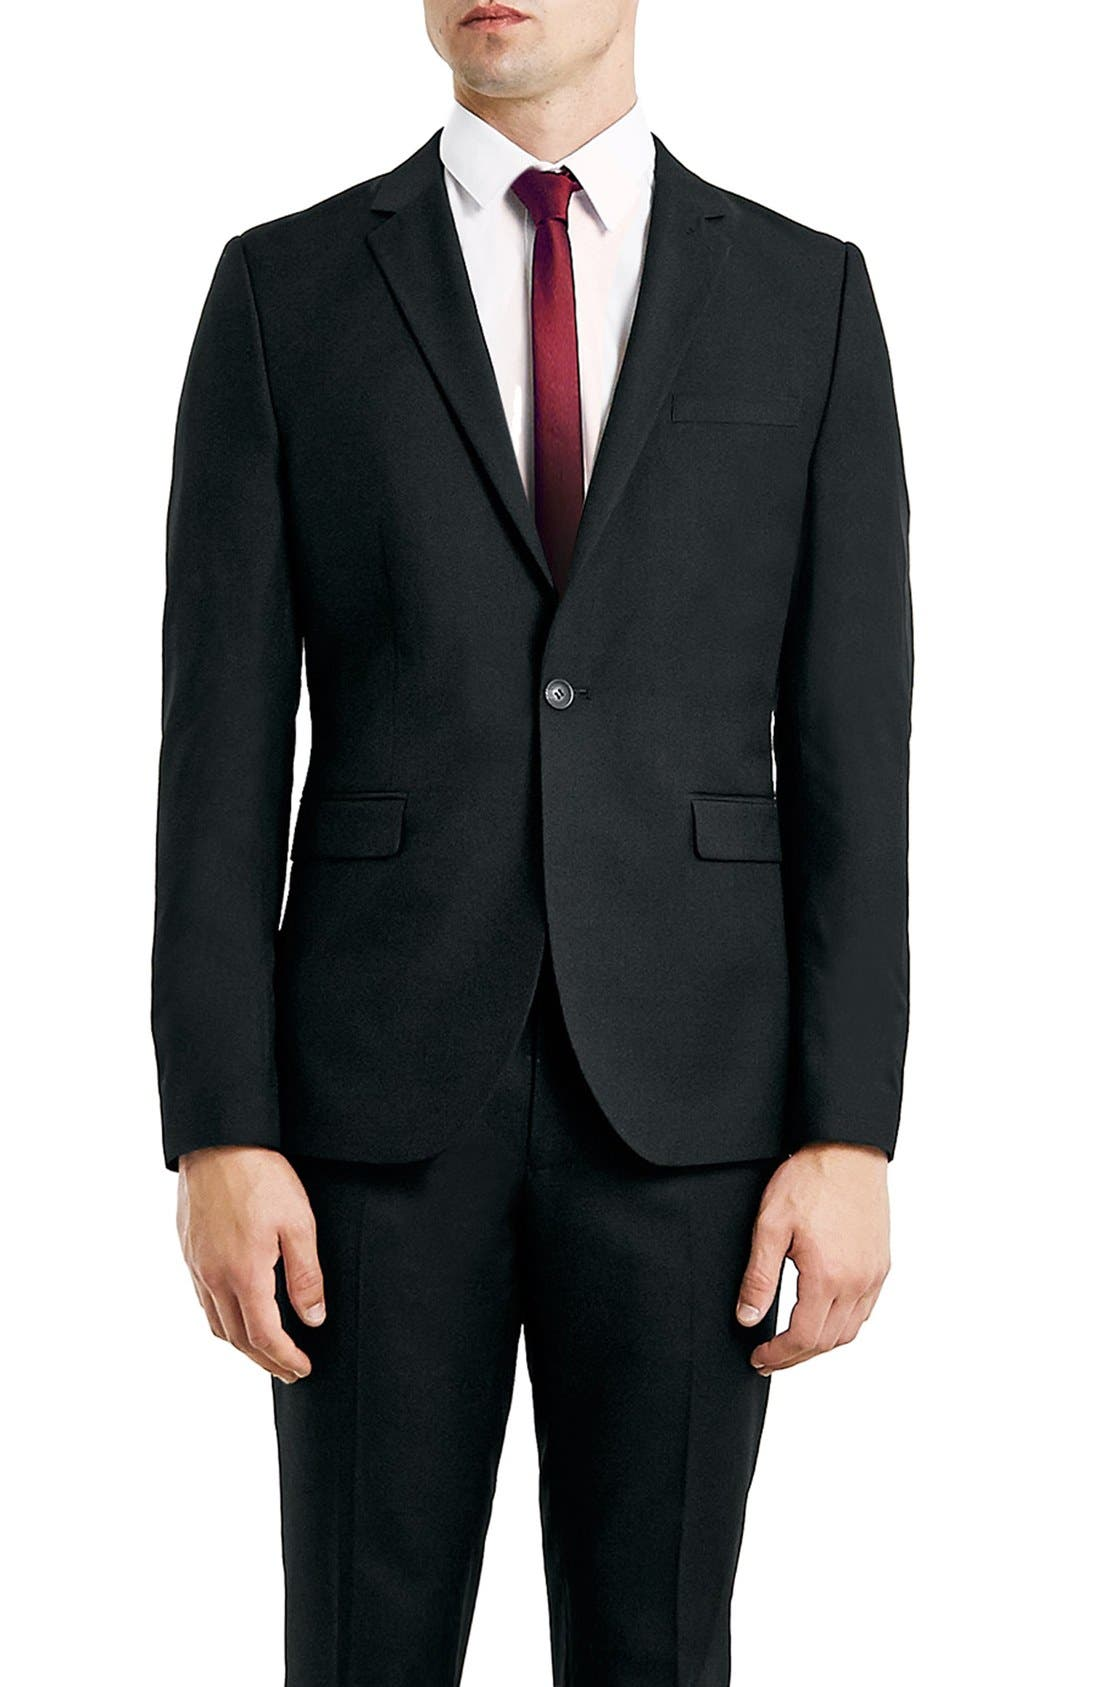 Topman Skinny Fit Black One-Button Suit Jacket